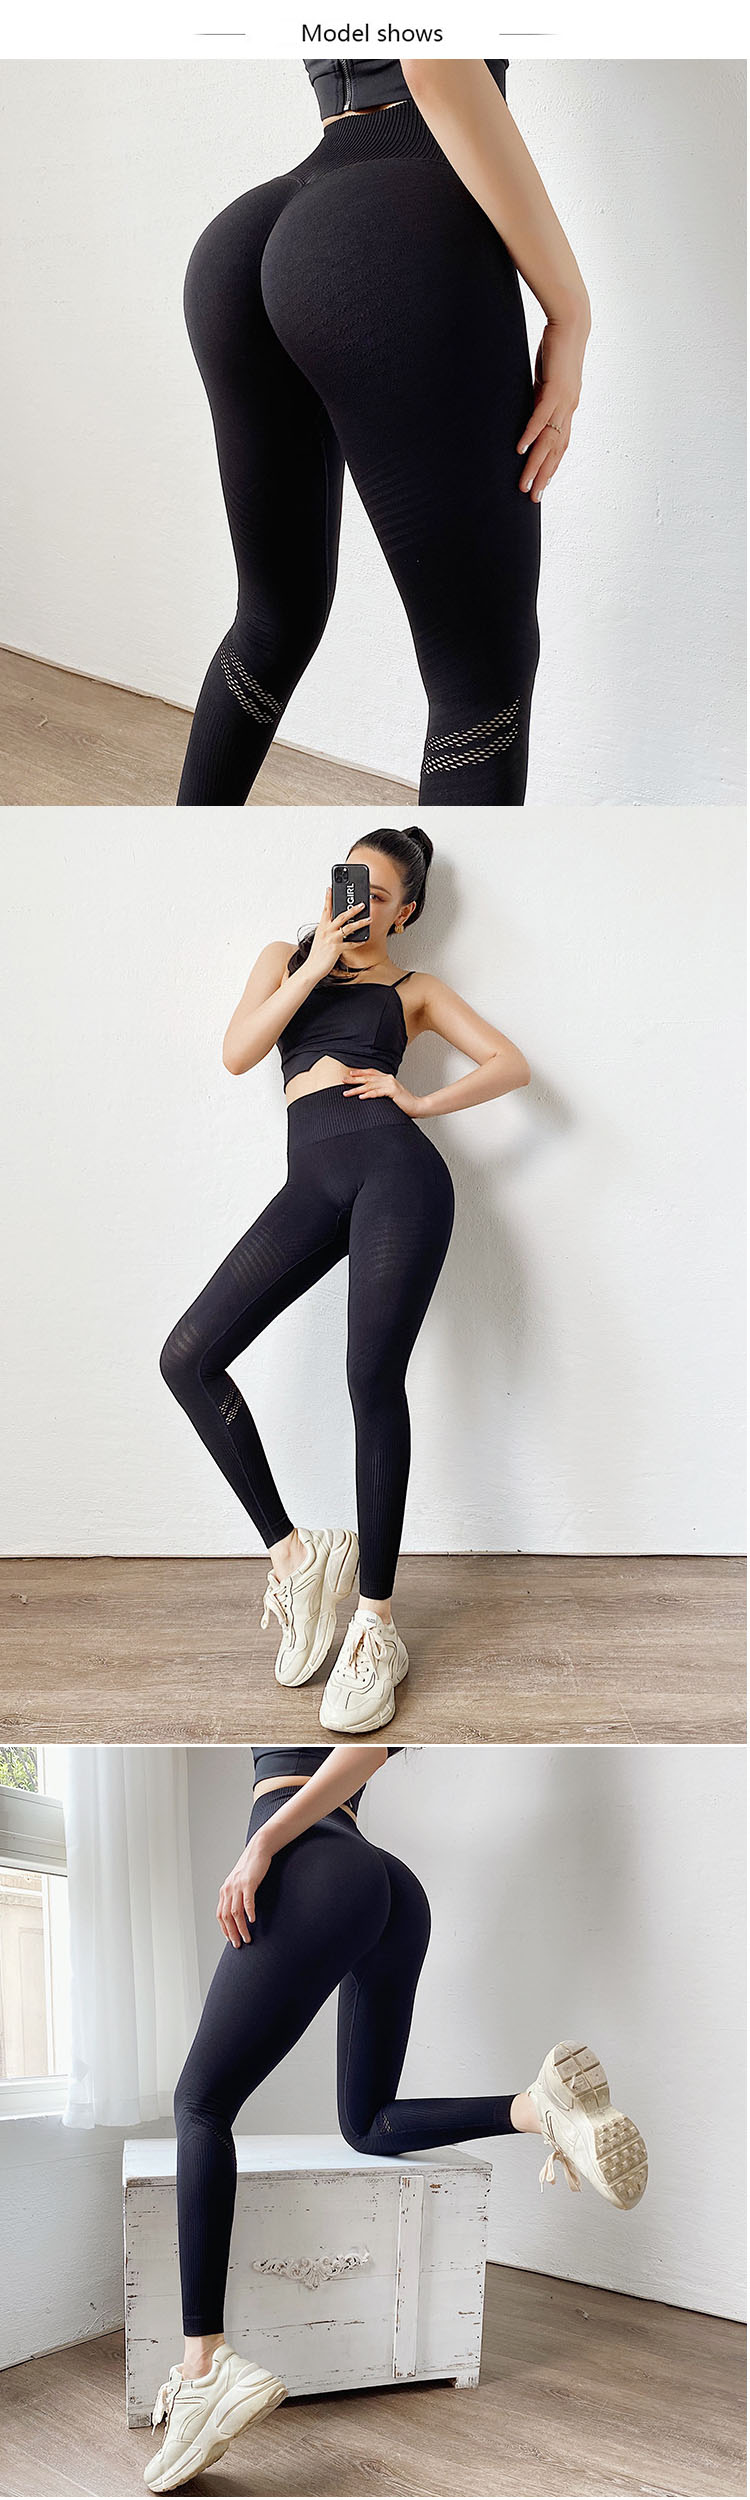 Knit yoga pants can be made of organic cotton